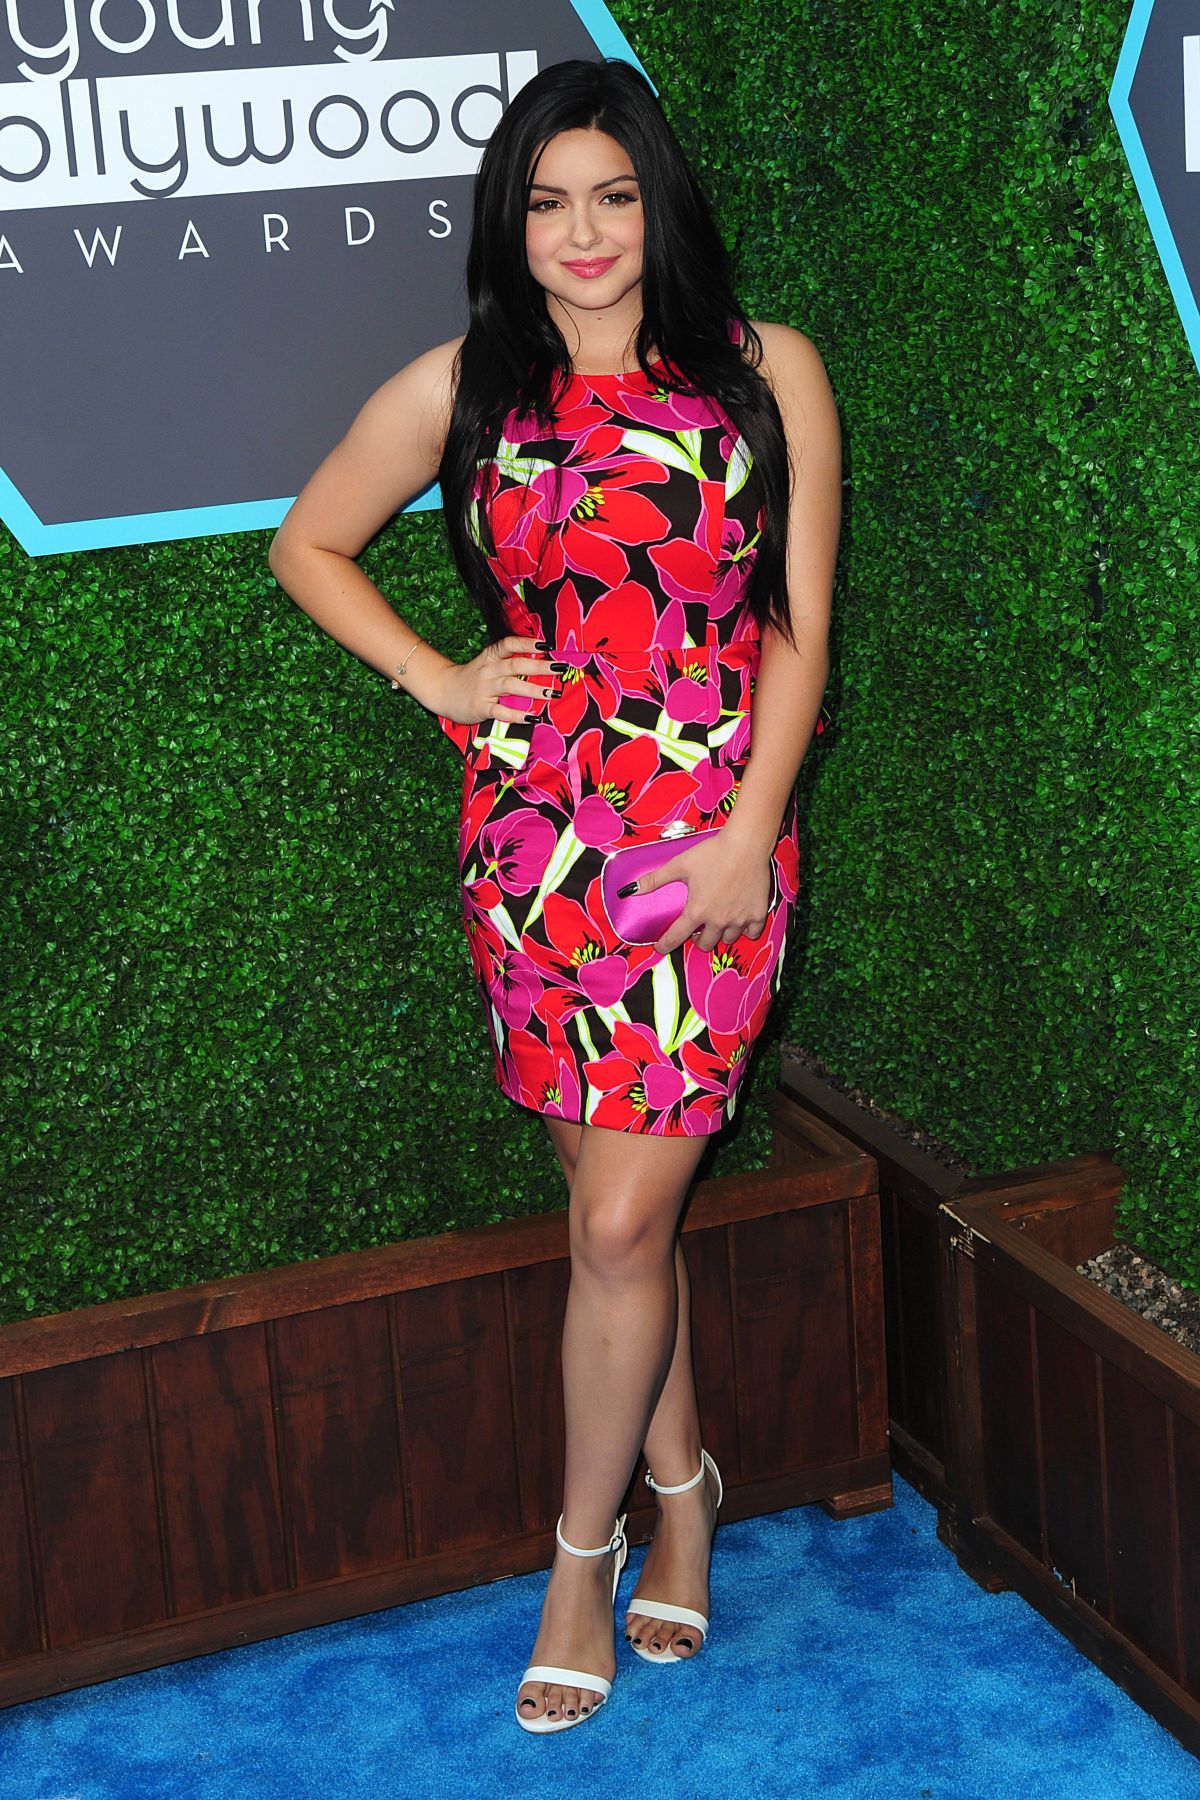 Ariel Winter At 2014 Young Hollywood Awards Celebzz